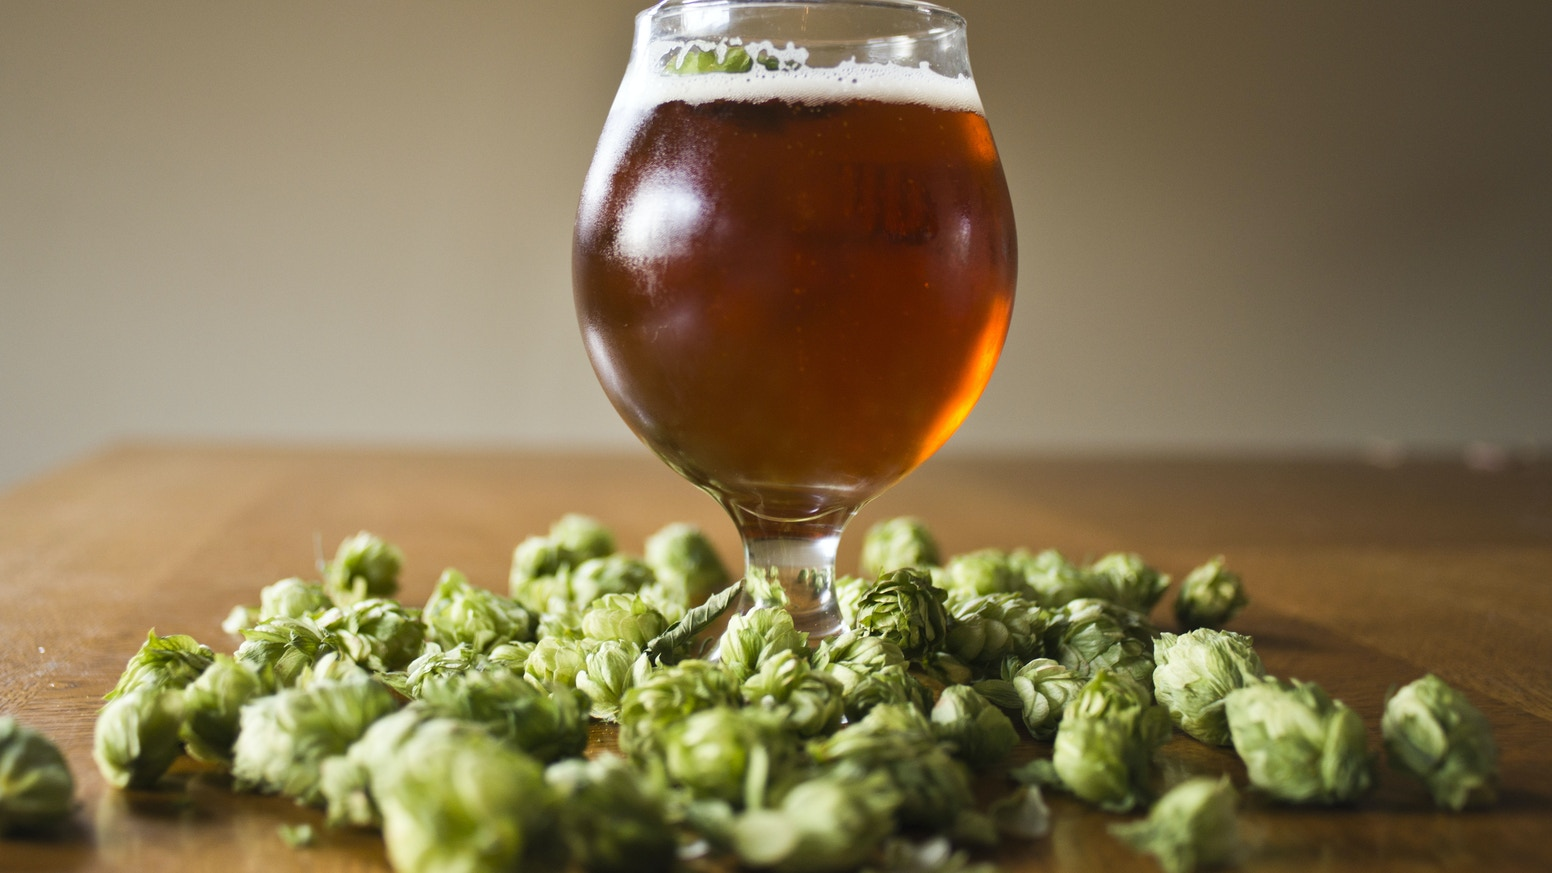 Round Table Hops is dedicated to revolutionizing craft beer by growing hops in a 4-season hydroponic hop greenhouse.